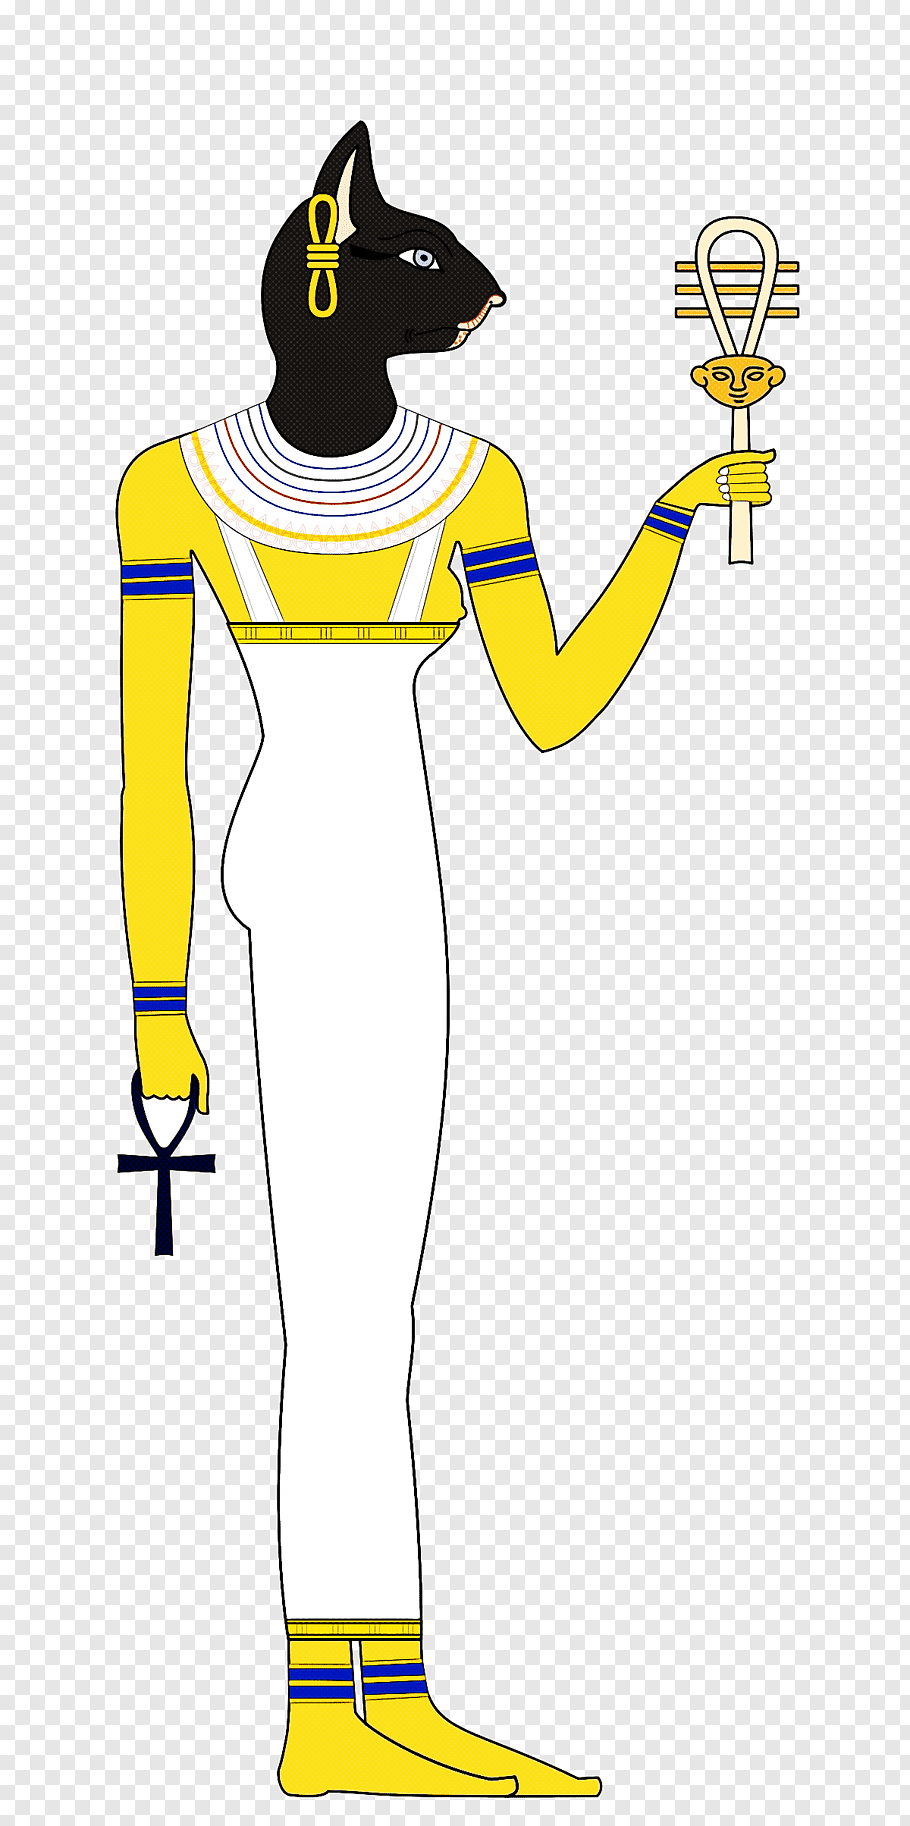 Yellow cartoon standing joint arm, Costume free png.